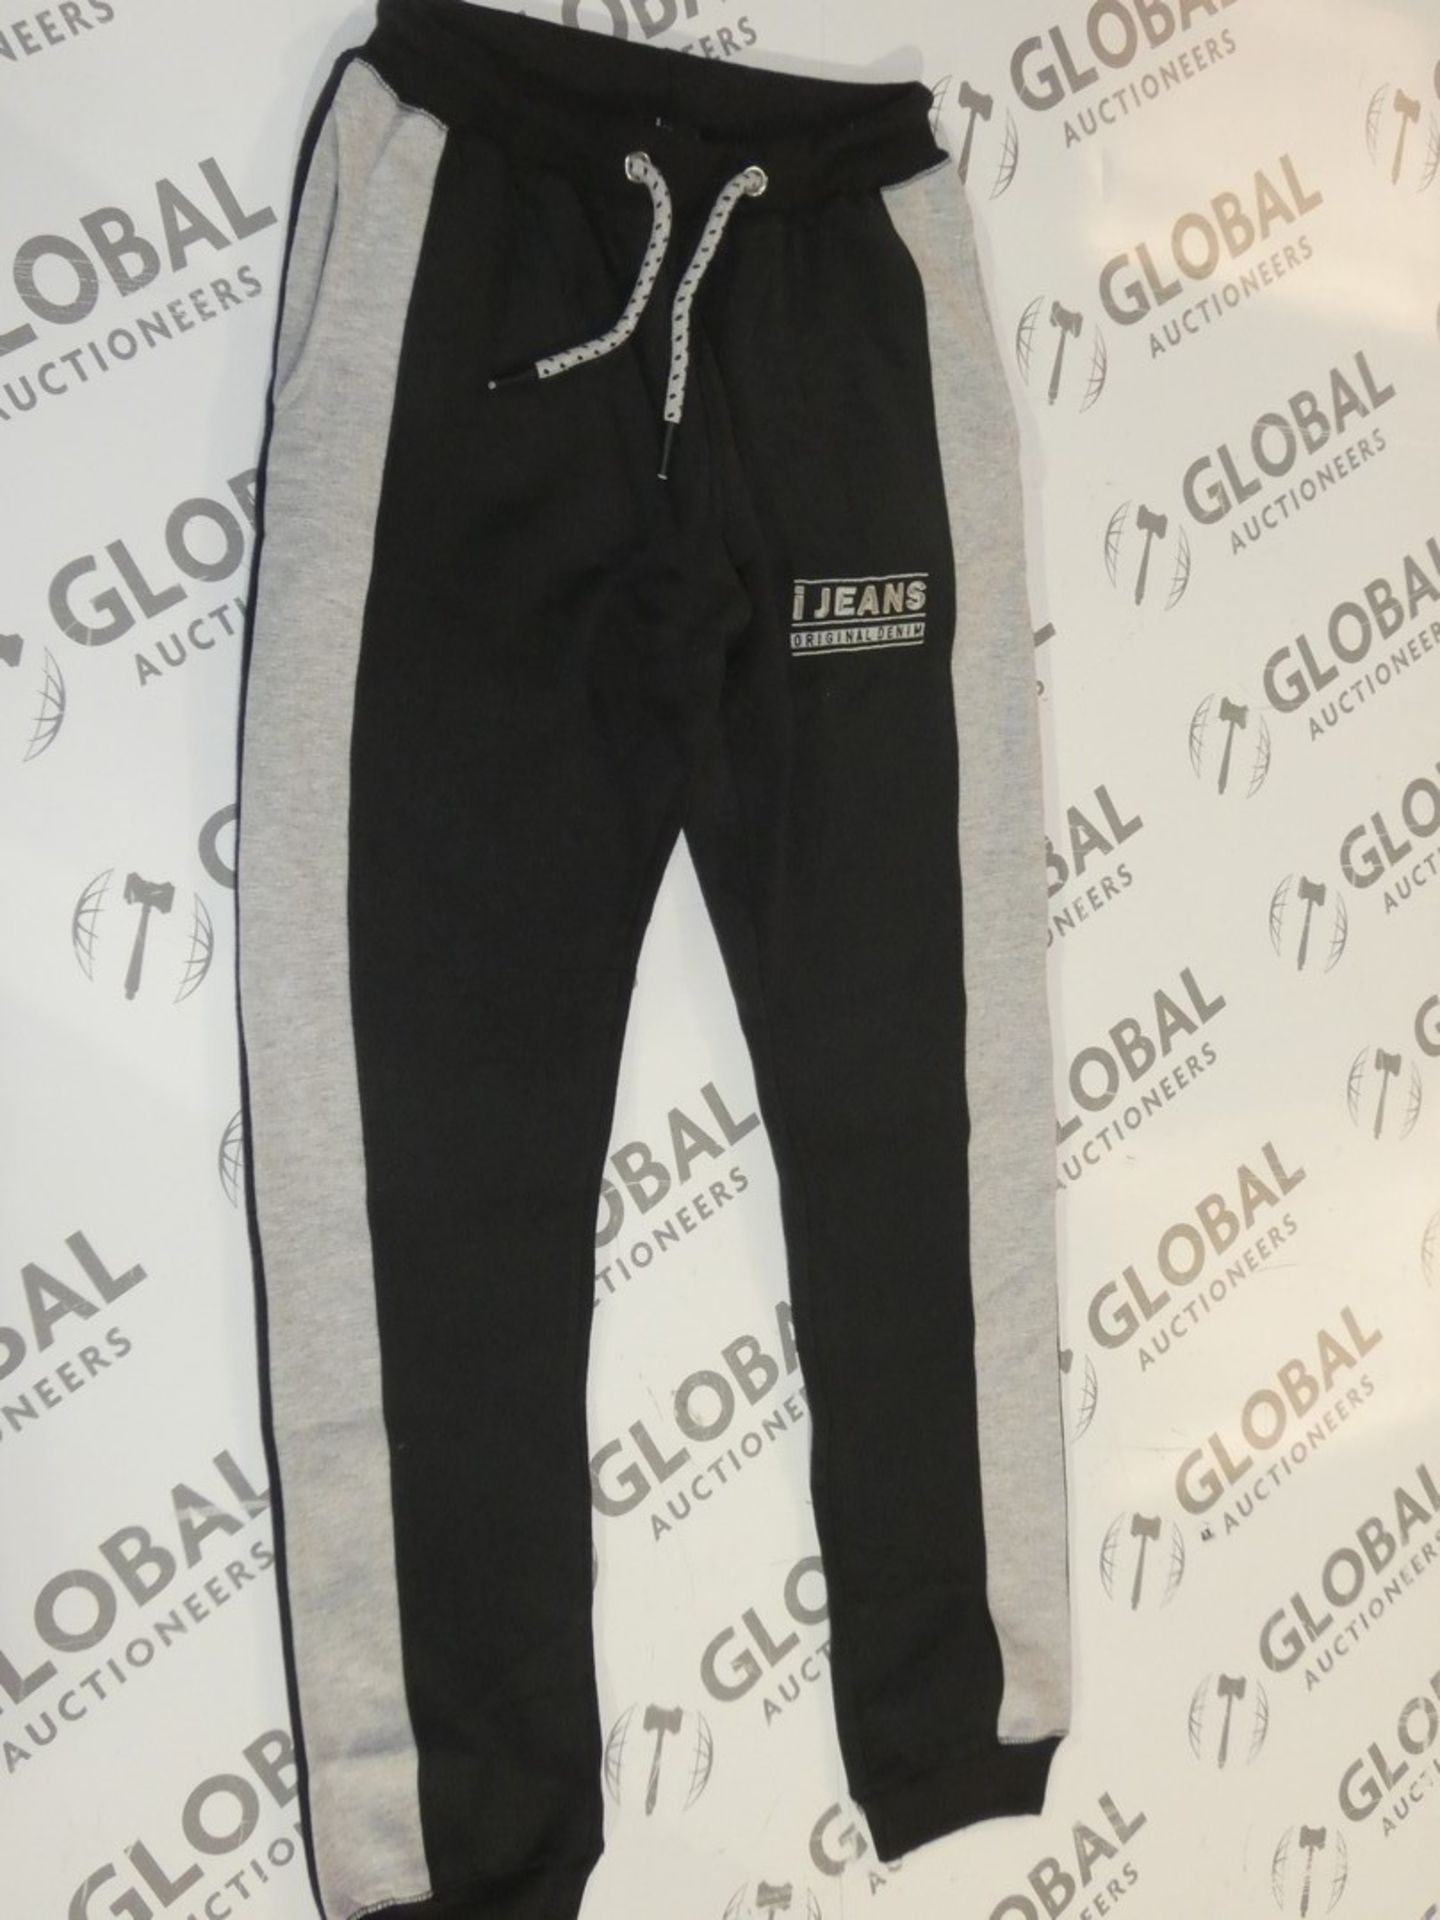 Lot 171 - Assorted Brand New Pairs Of Ijeans Original Denim Black Lounging Pants In Assorted Sizes RRP £25 A